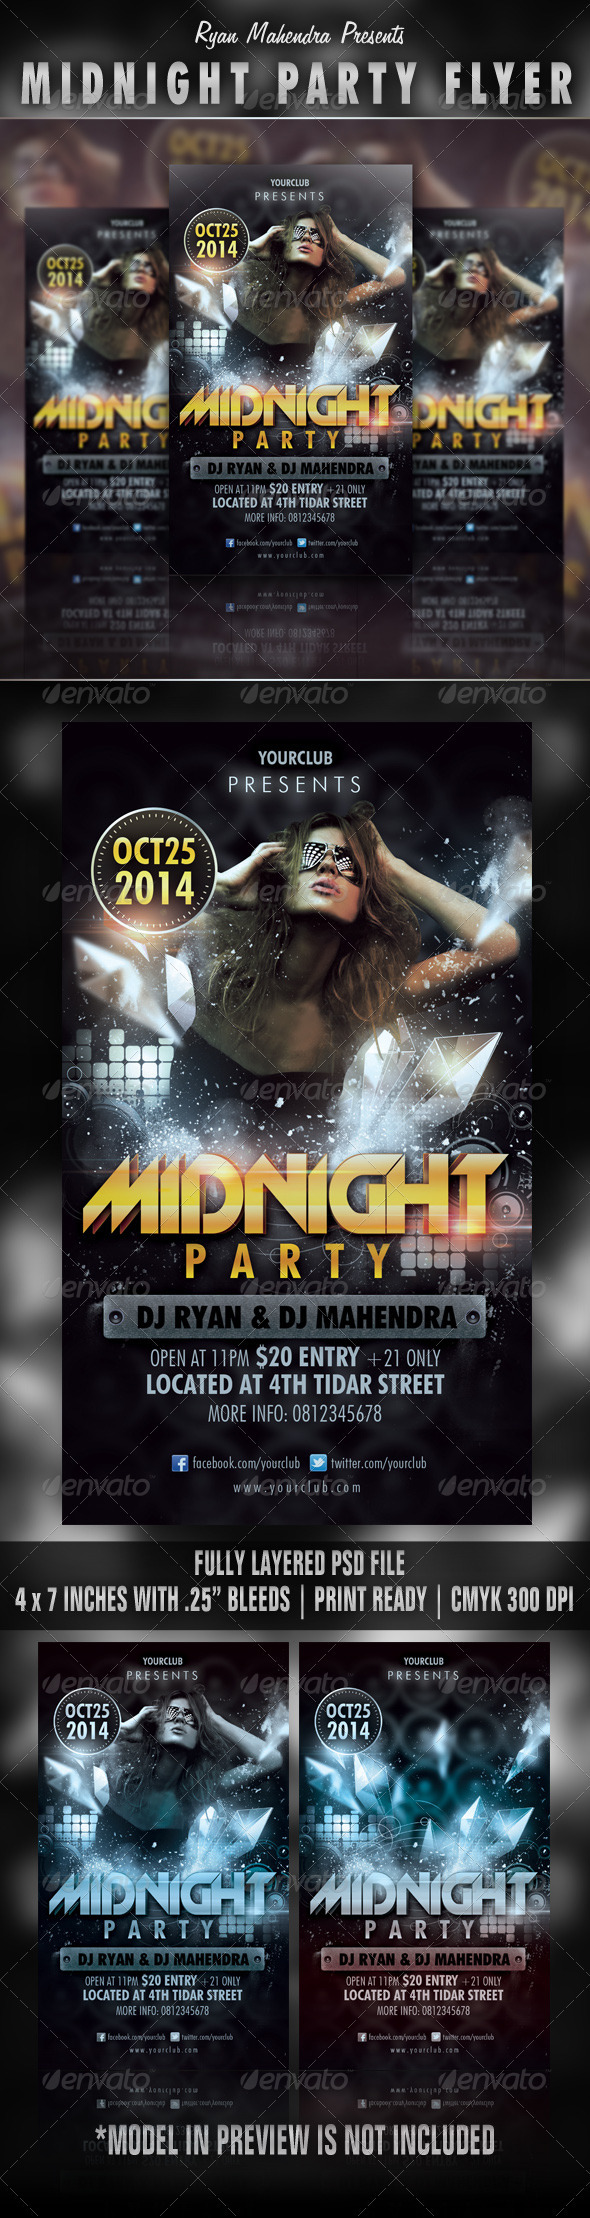 Midnight Party Flyer - Clubs &amp; Parties Events